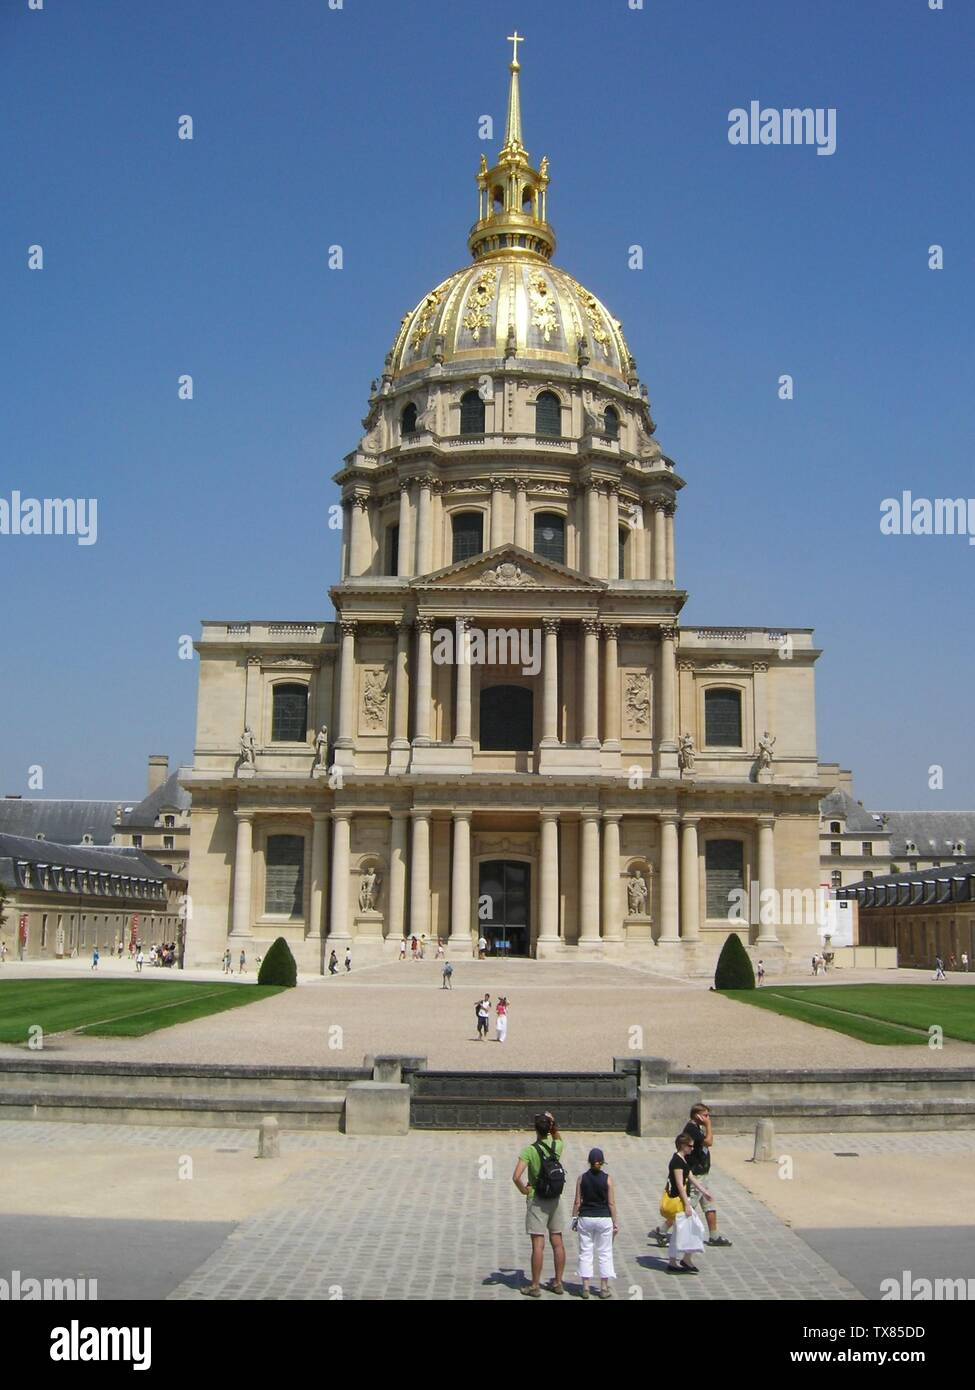 'English: The Les Invalides church.; 28 July 2006 (original upload date); the English language Wikipedia (log); The creator of this image, Alex Buirds, allows Wikipedia to use it freely.; ' - Stock Image